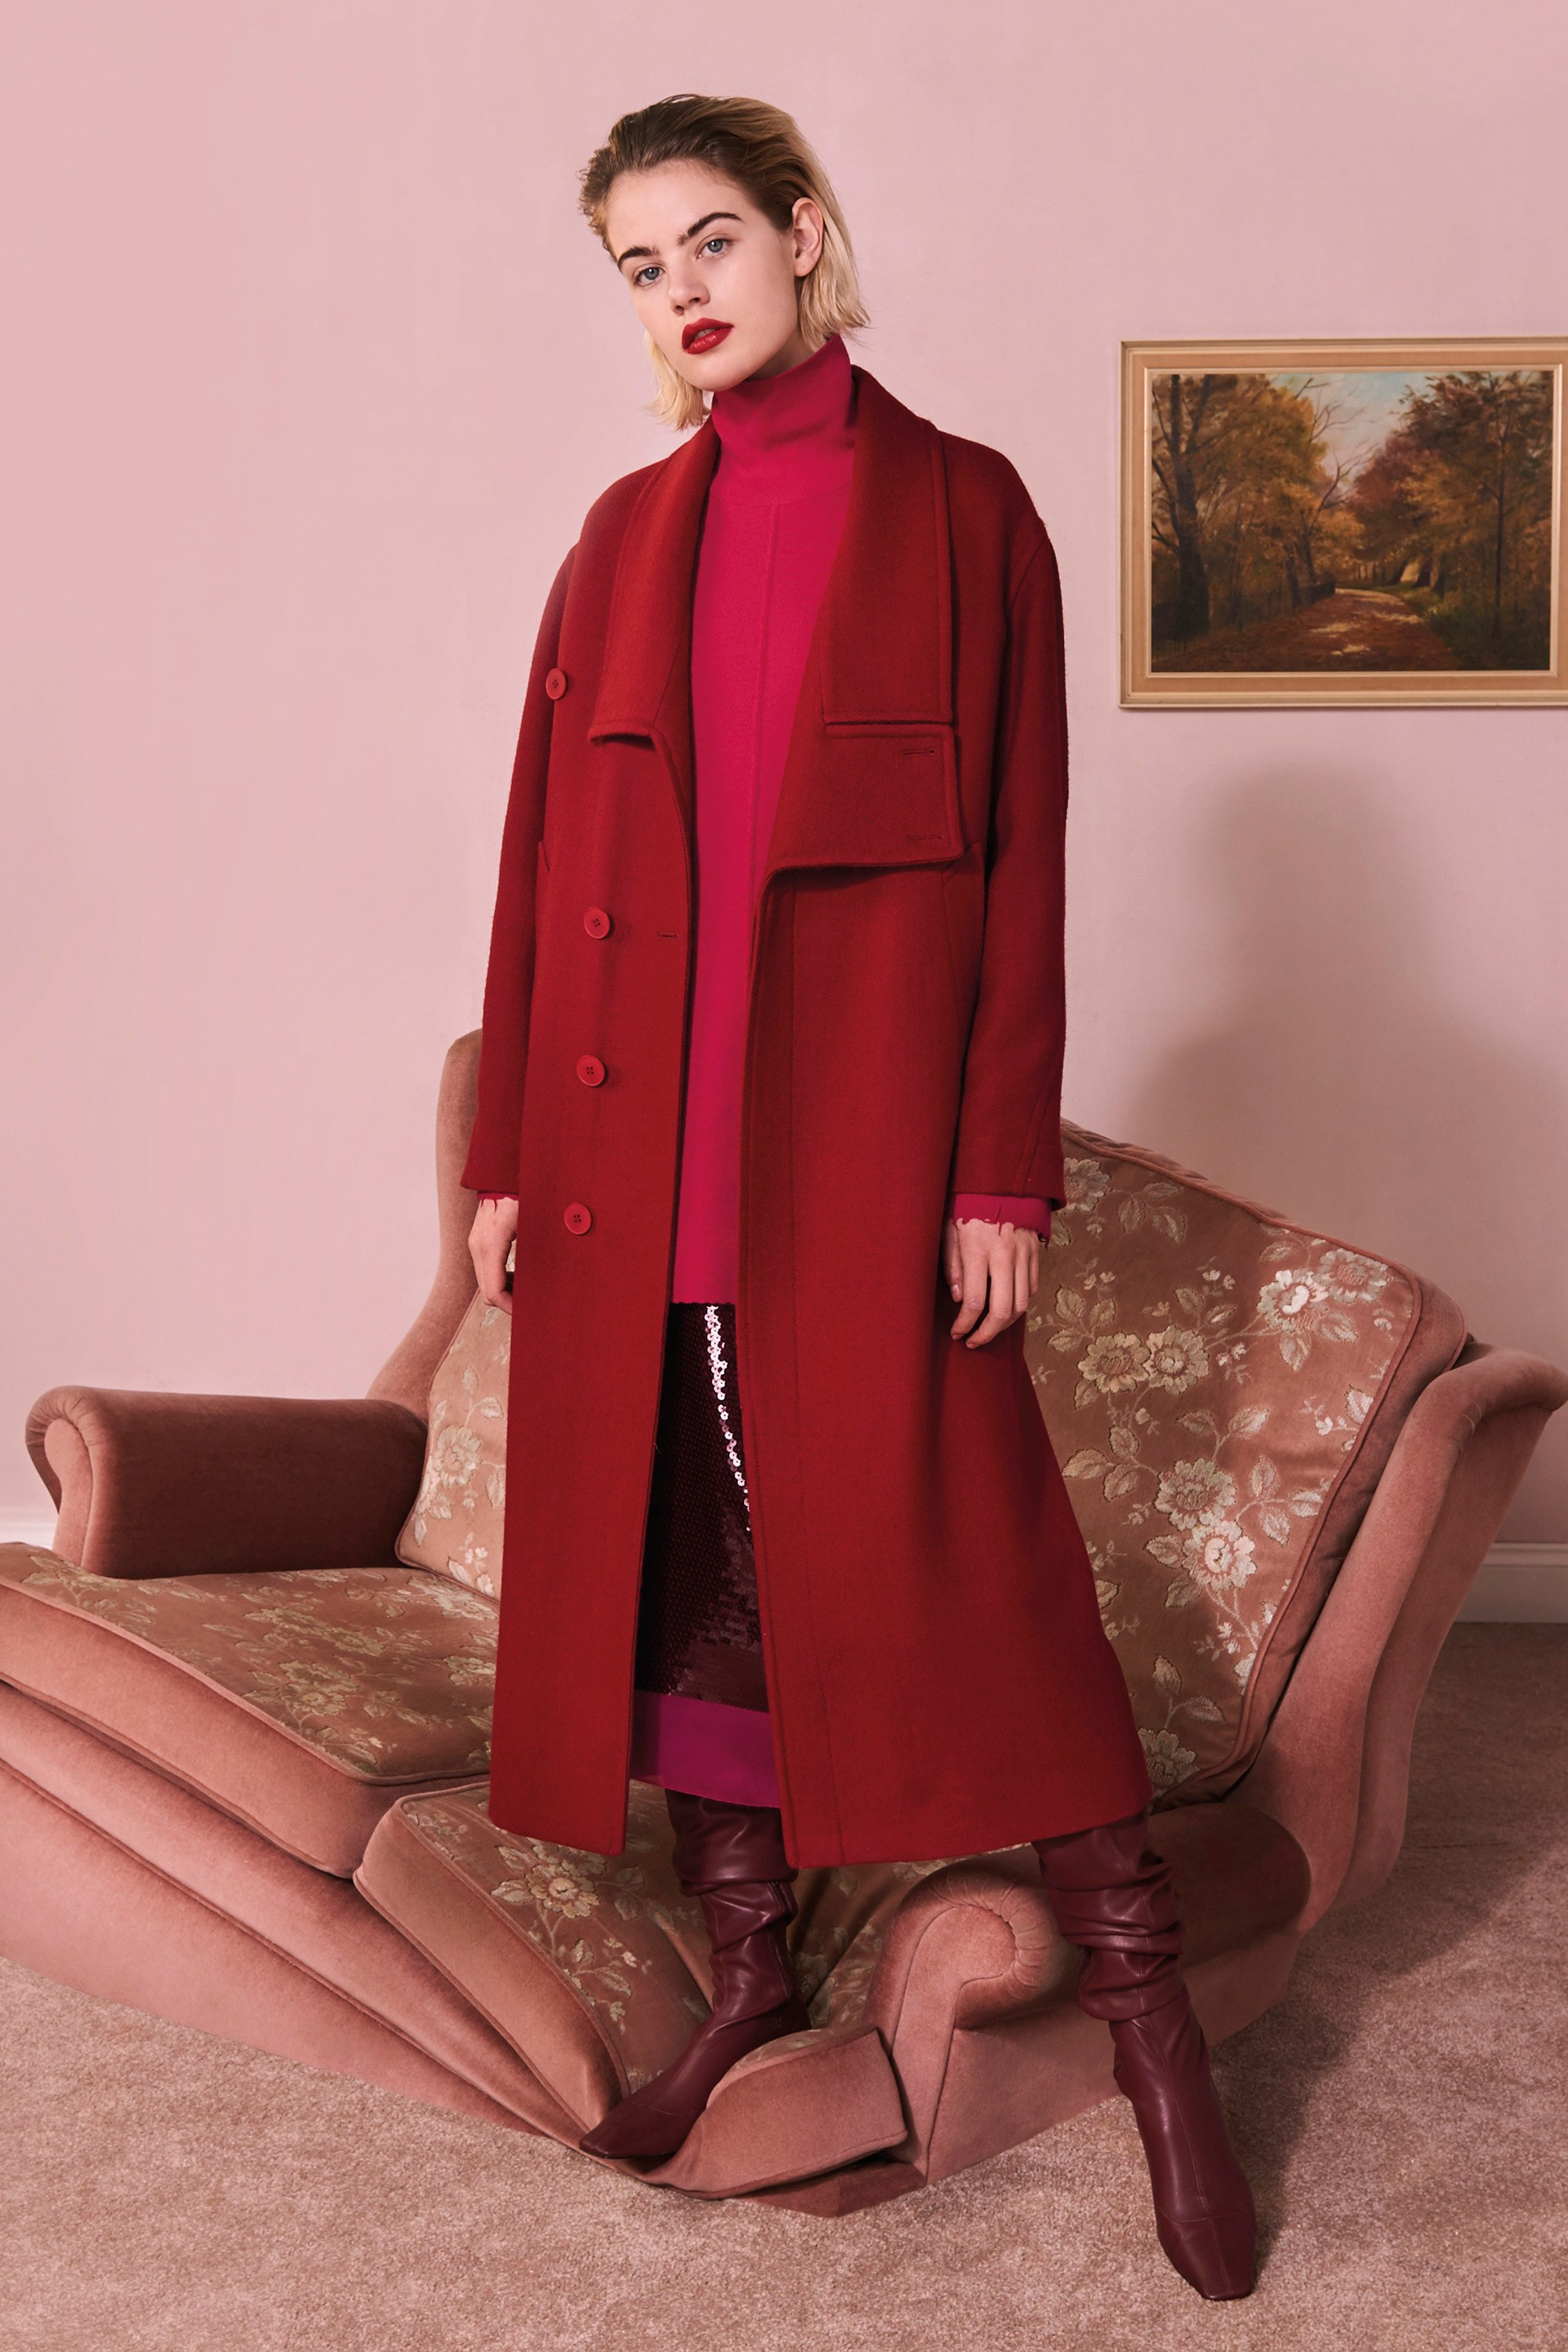 36-stella-mccartney-pre-fall-2017.jpg